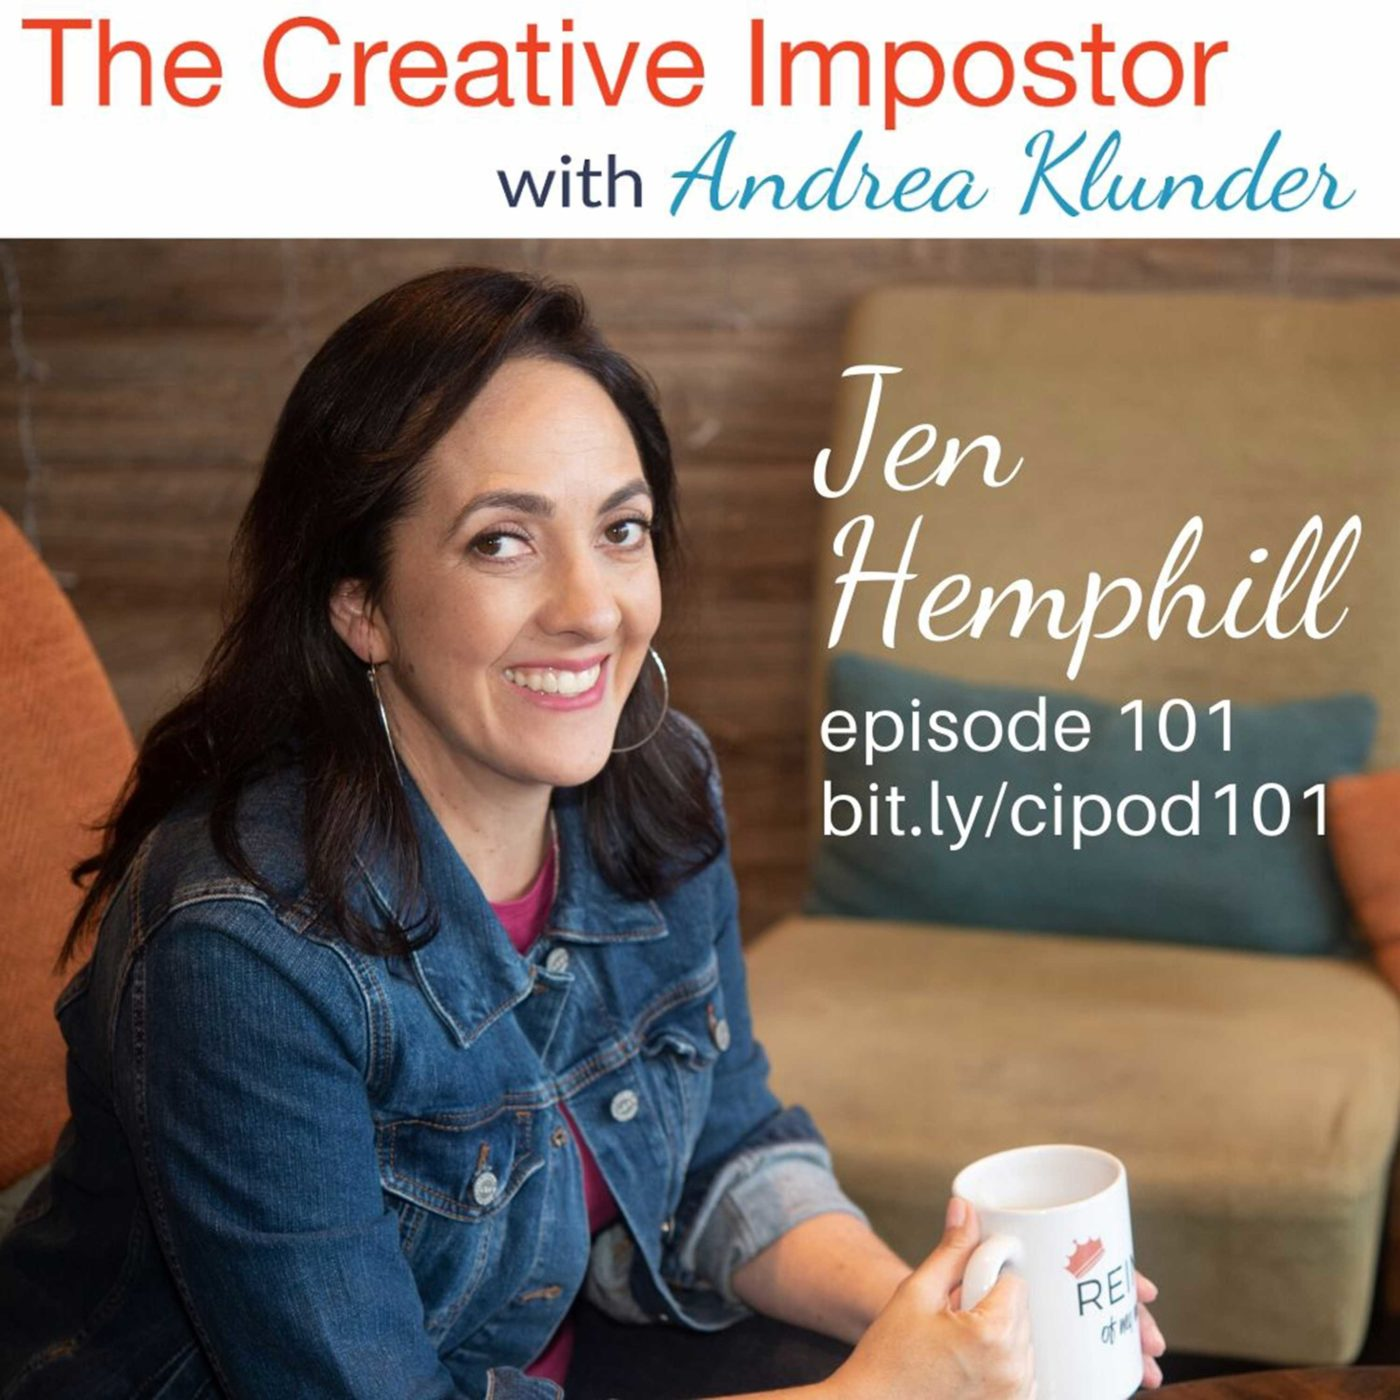 CI101: Navigate your finances through tough times with Jen Hemphill